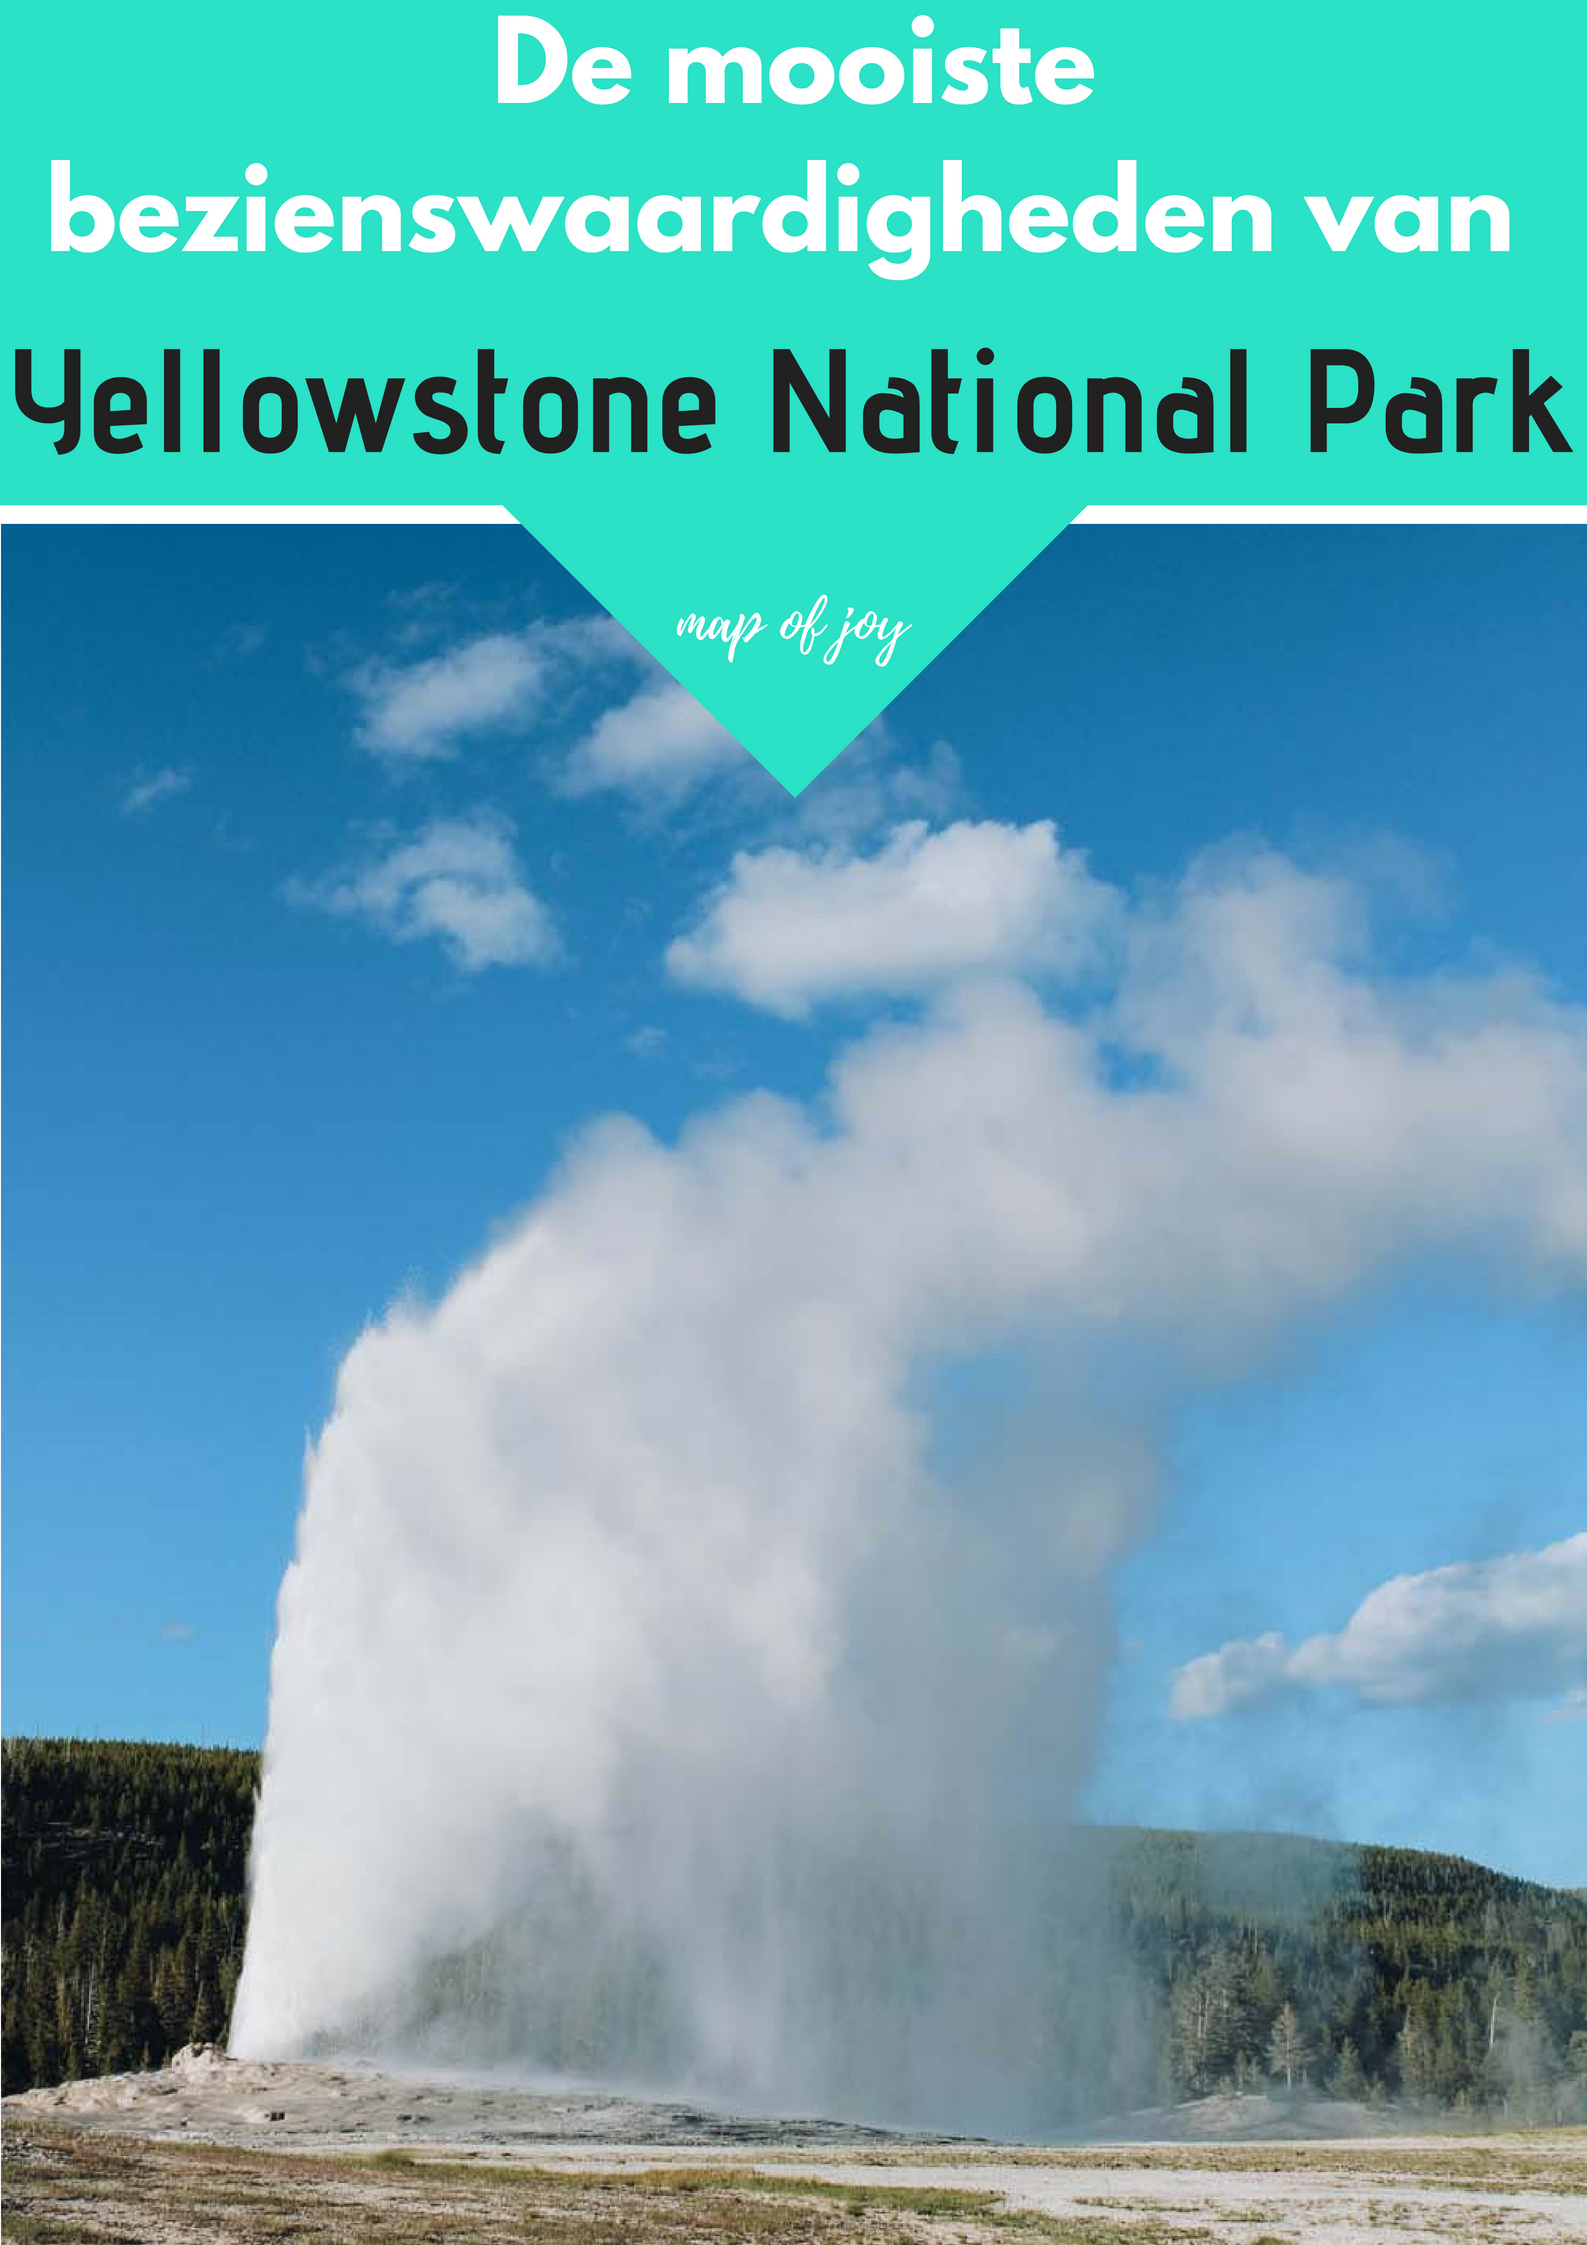 De mooiste bezienswaardigheden van Yellowstone National Park - Map of Joy